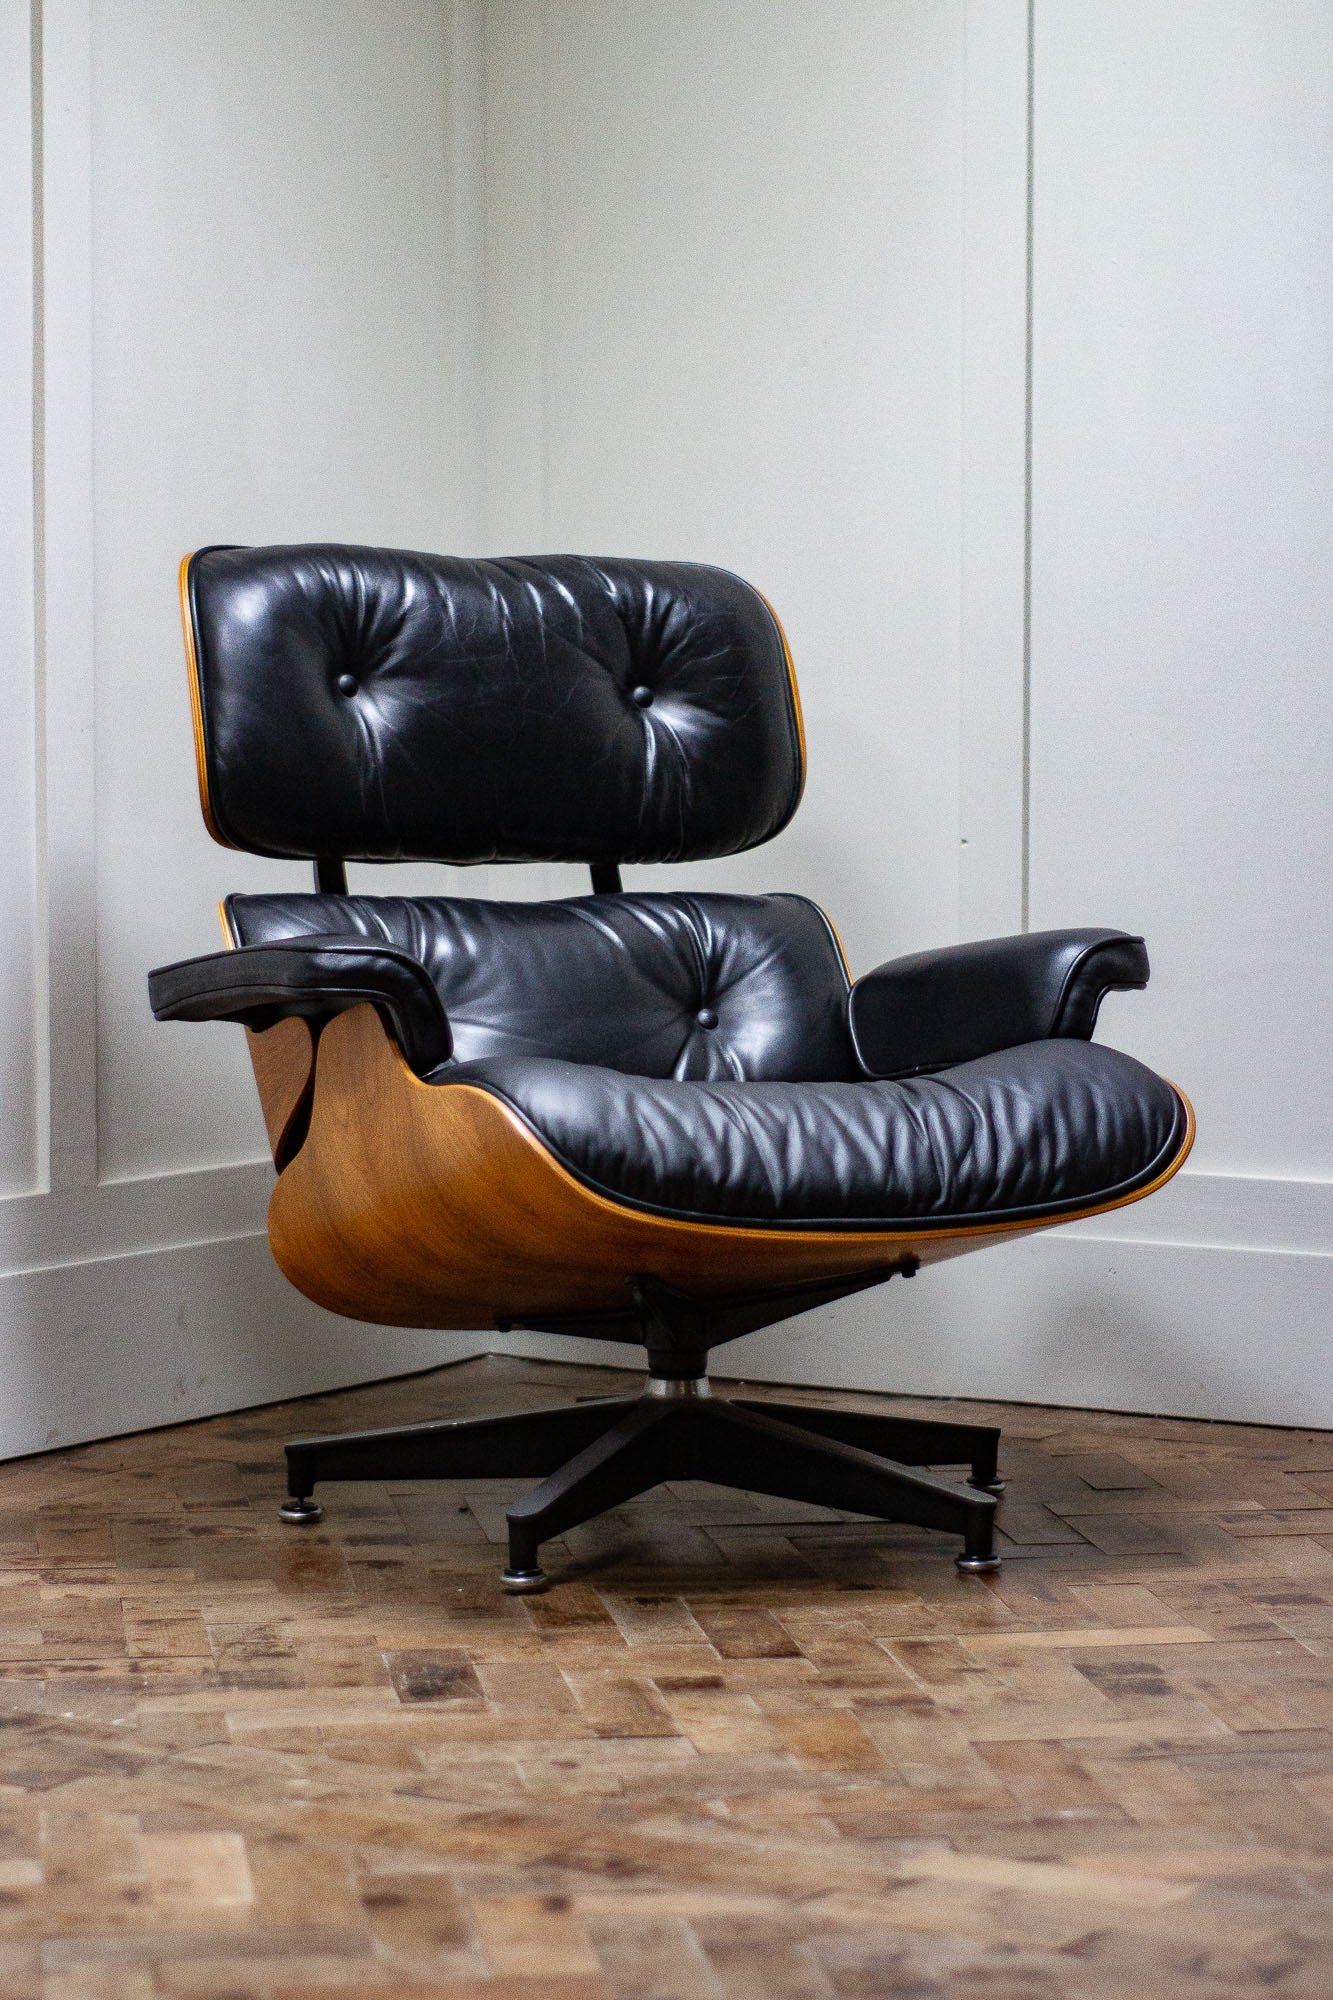 Eames Lounge Chair.Original Charles Ray Eames Lounge Chair By Herman Miller